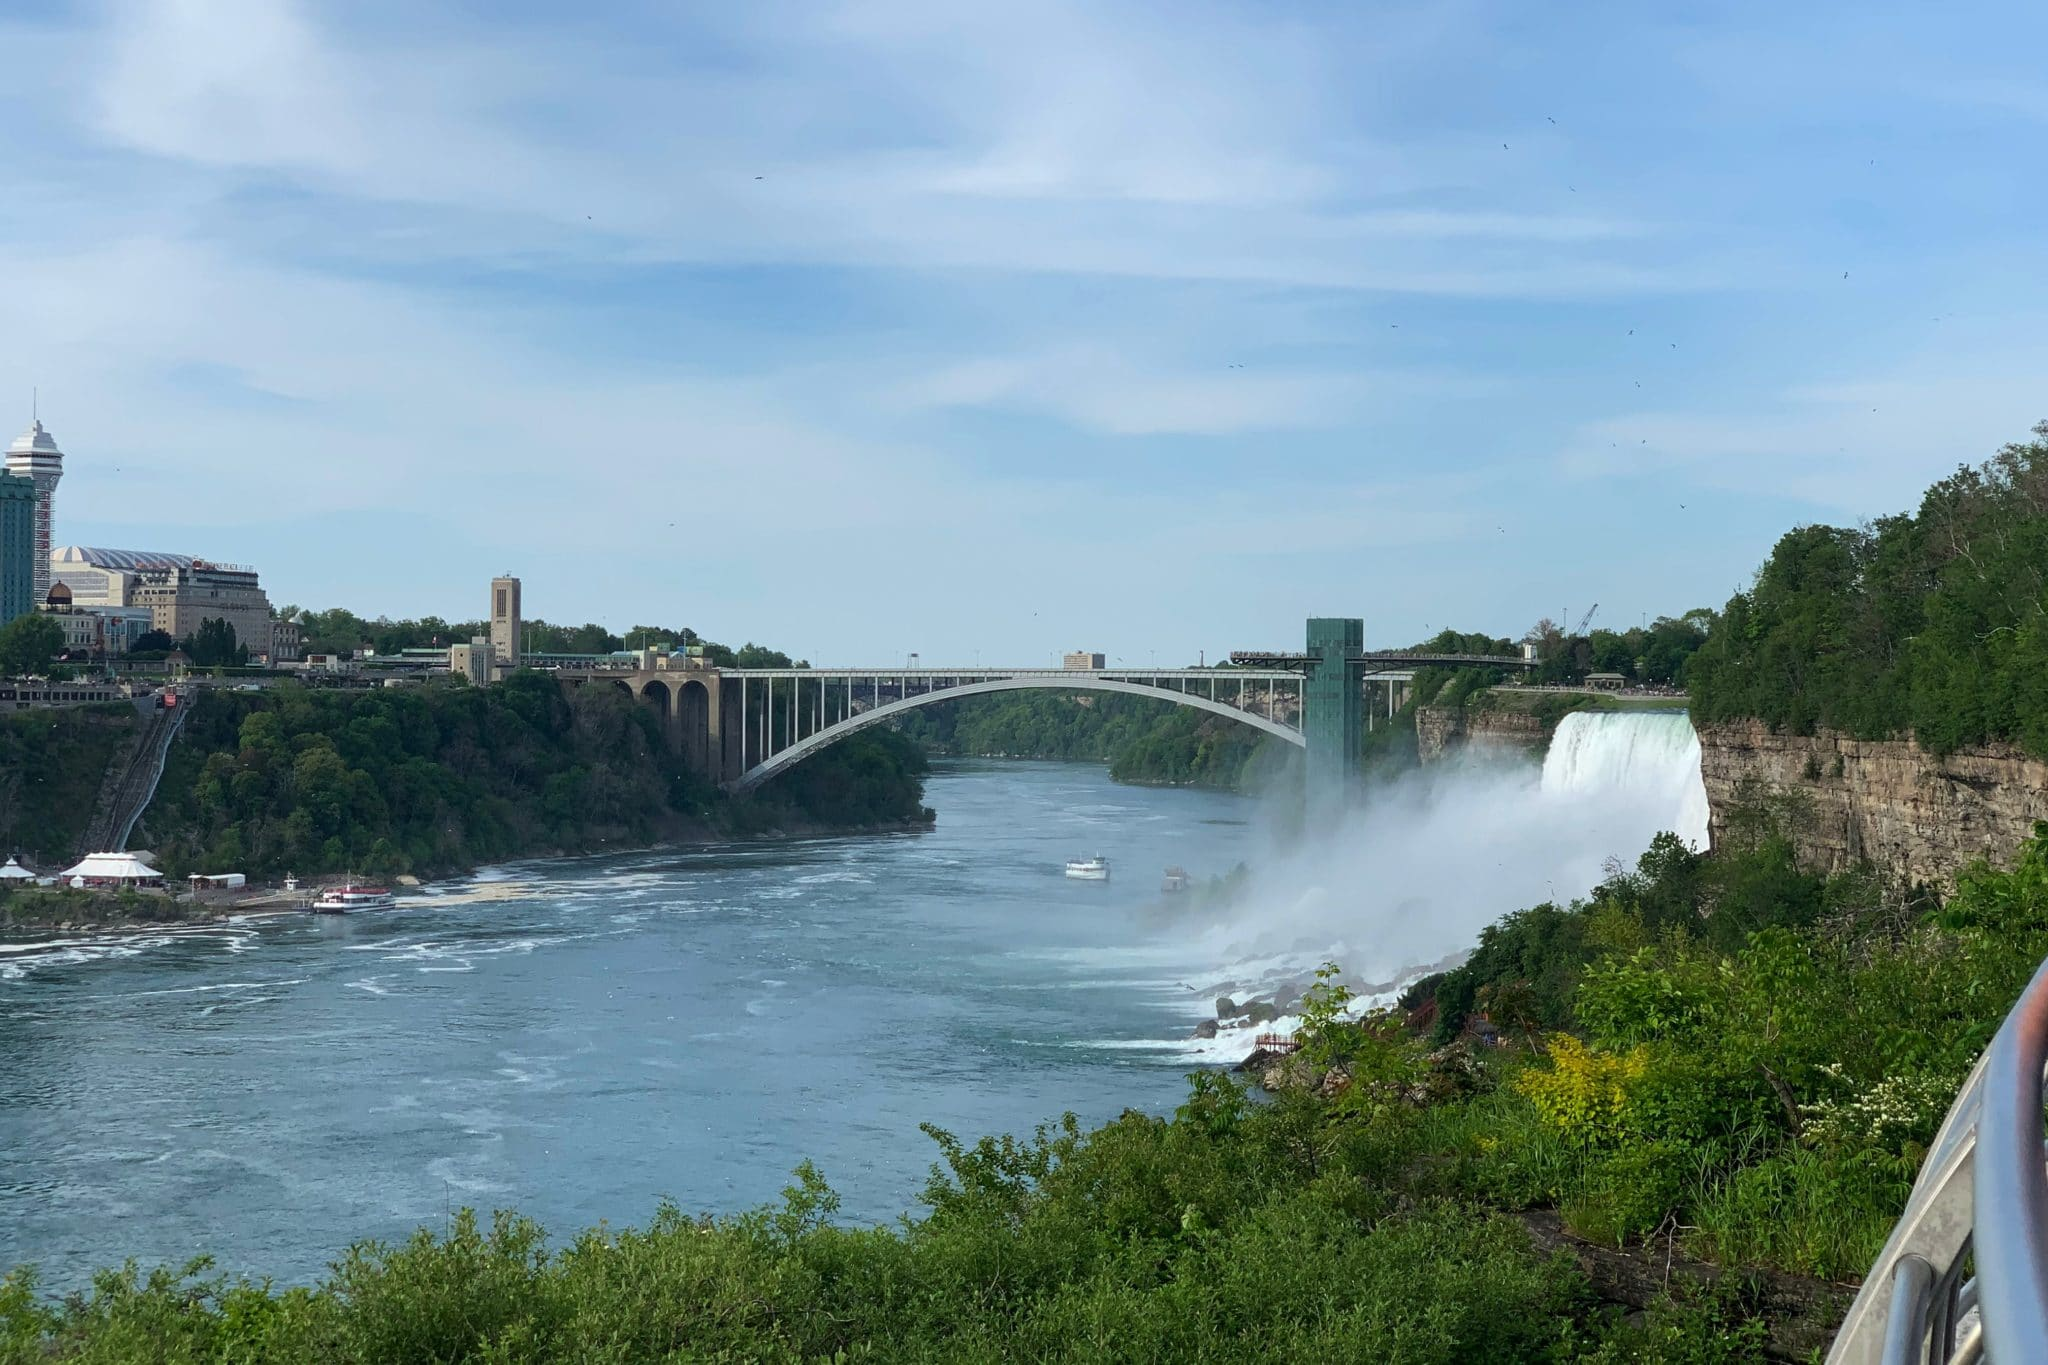 The Niagara Frontier Home Inspectors Training Conference will take place at Niagara Falls, NY in October 2021.